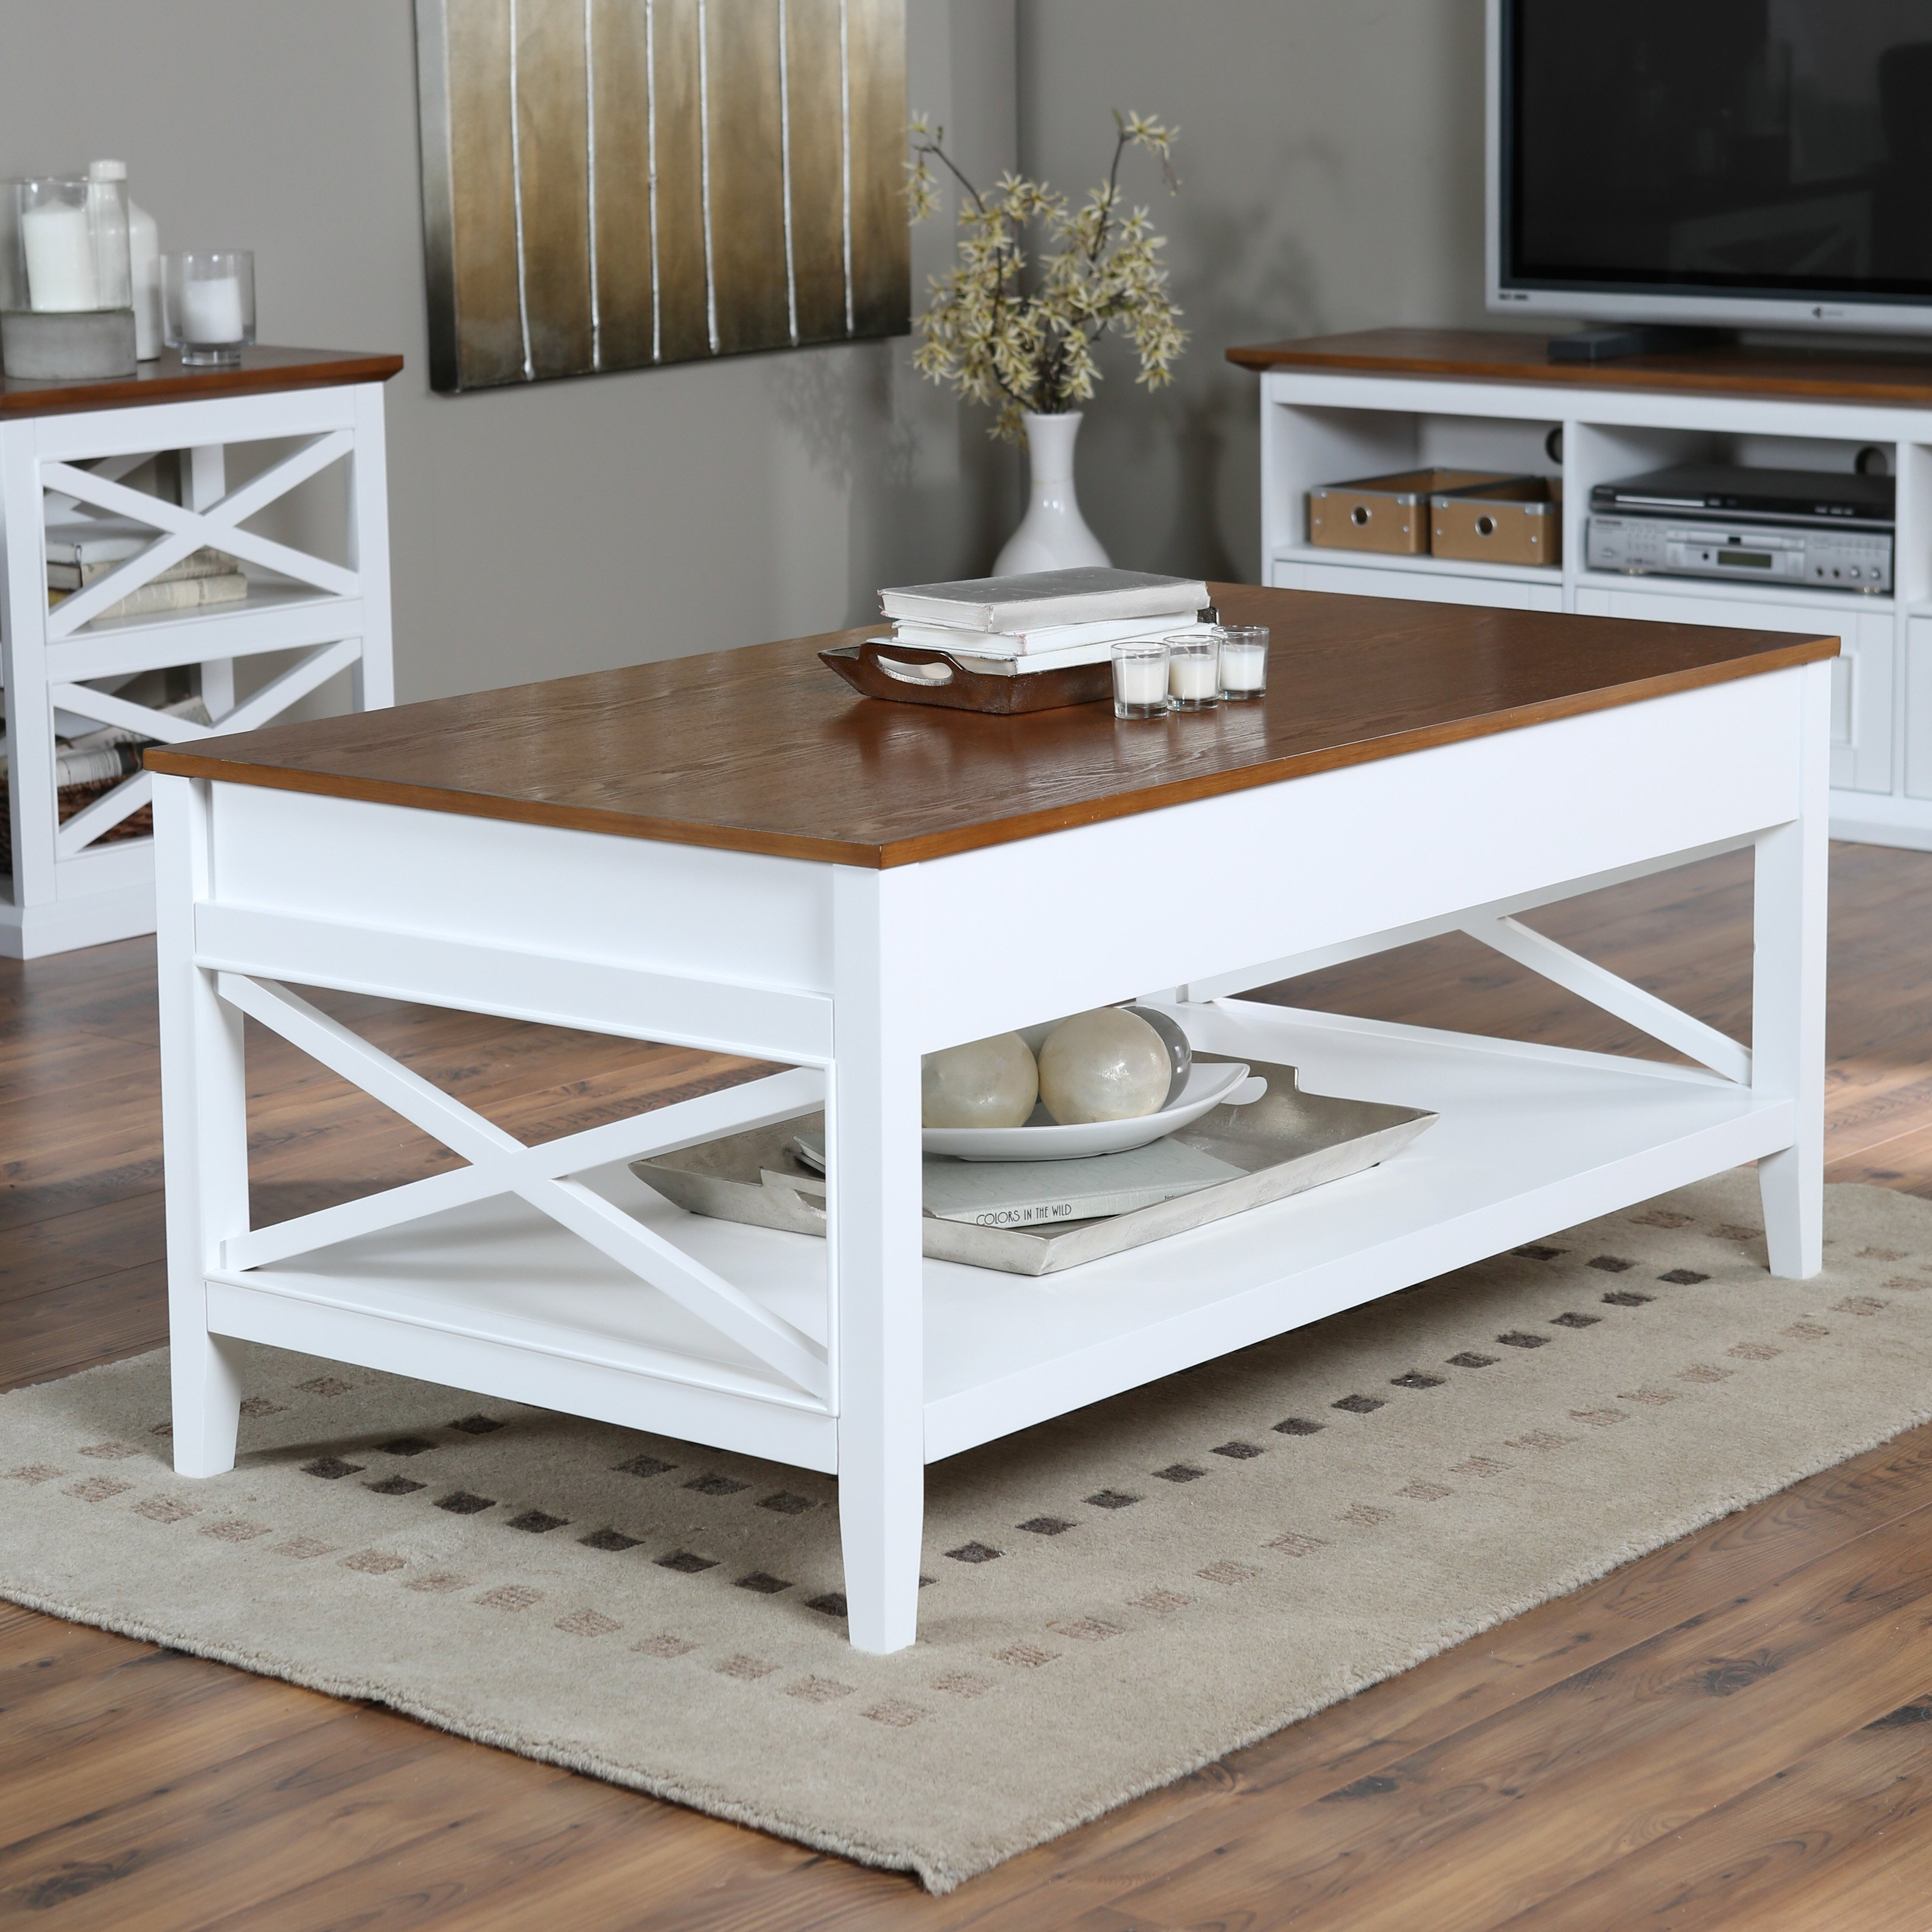 Peacefulness with white coffee table